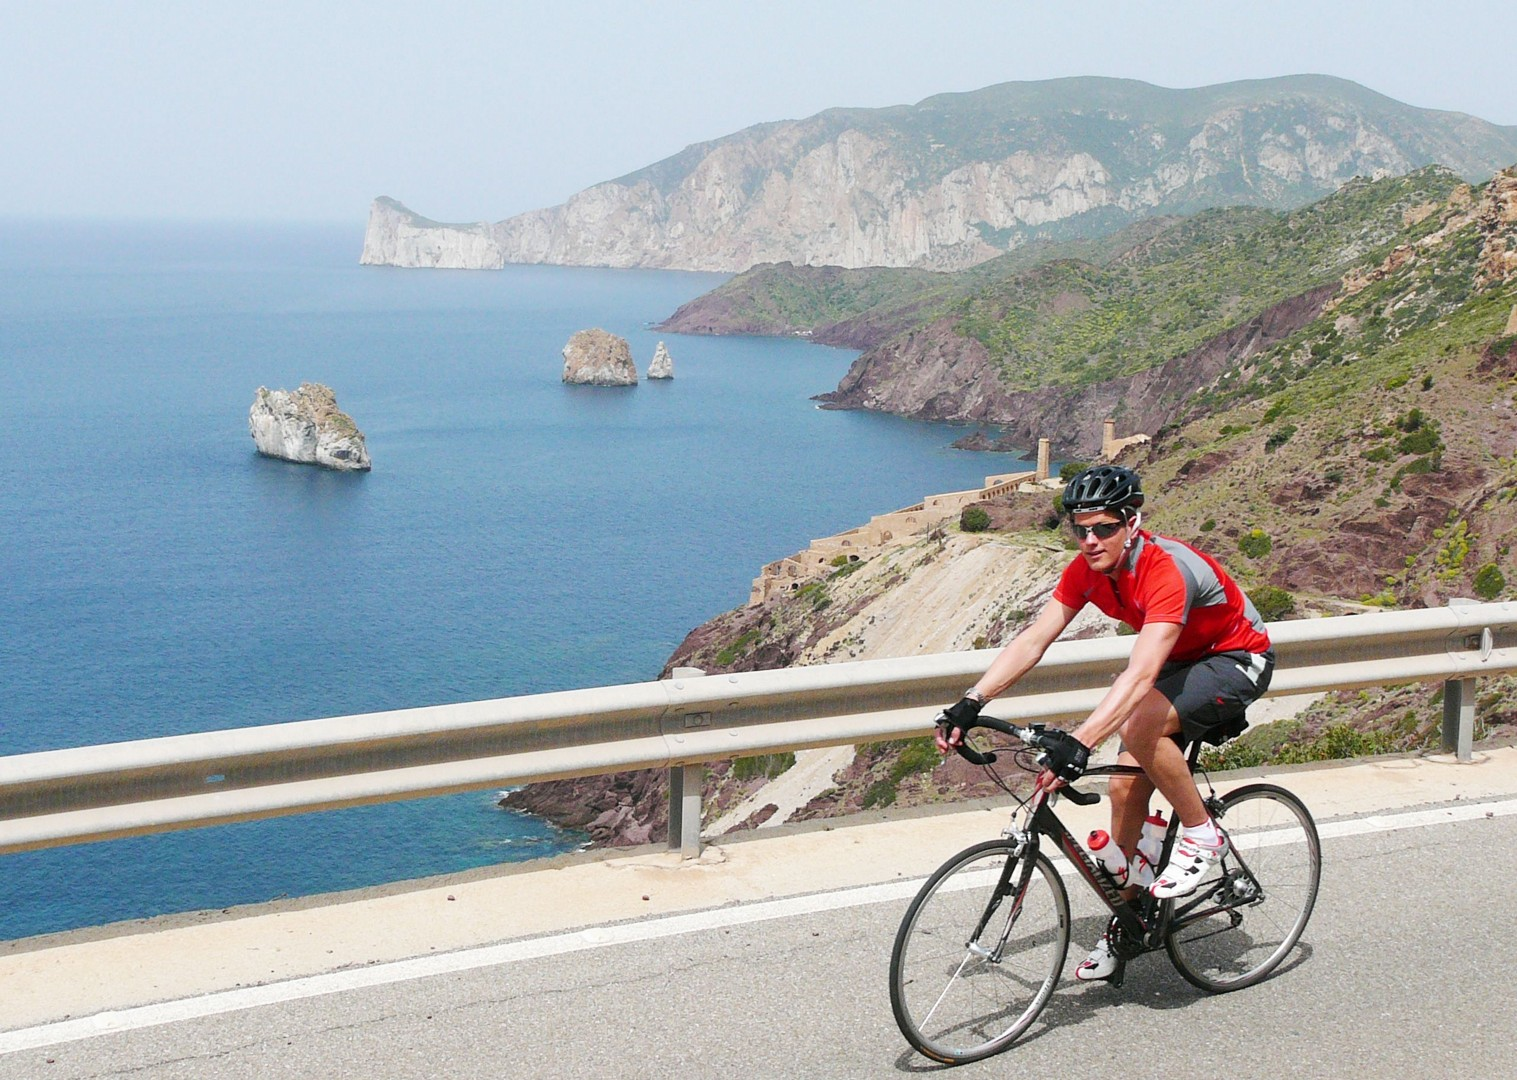 Sardinia-Coastal-Explorer-Self-Guided-Road-Cycling-Holiday-coastal-riding.JPG - Italy - Sardinia - Coastal Explorer - Self Guided Road Cycling Holiday - Italia Road Cycling